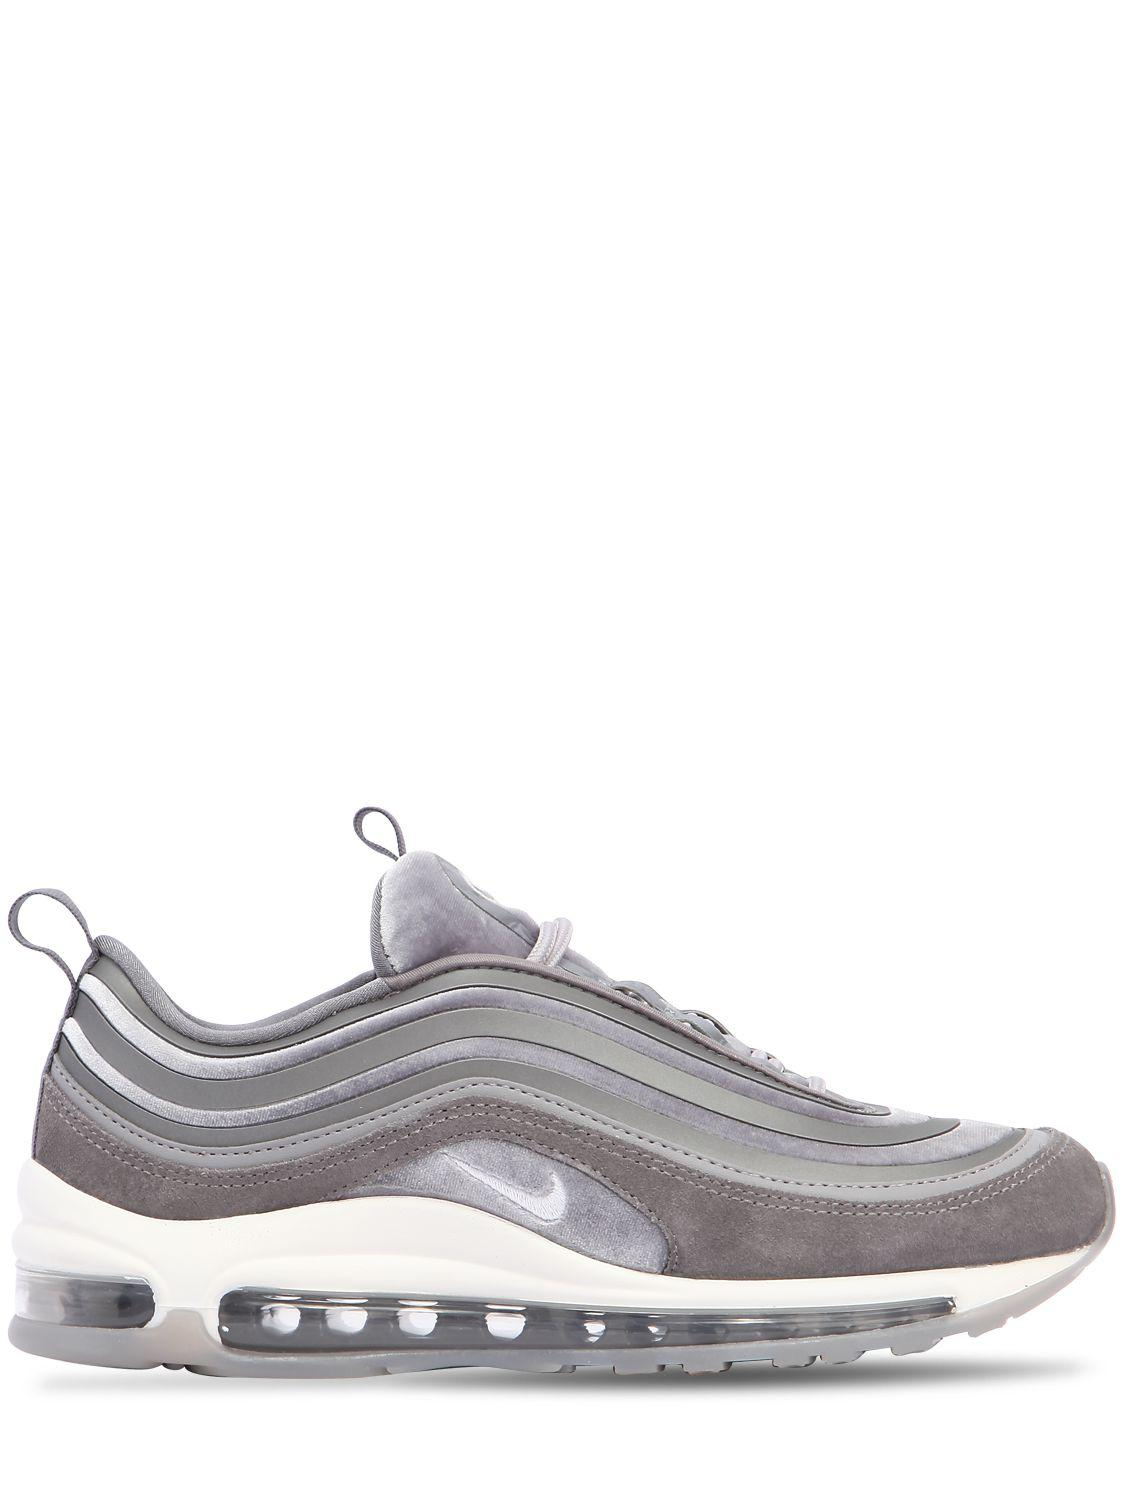 Nike Air Max 97 Women s Running Shoes Light Bone Deadly c4aa169be